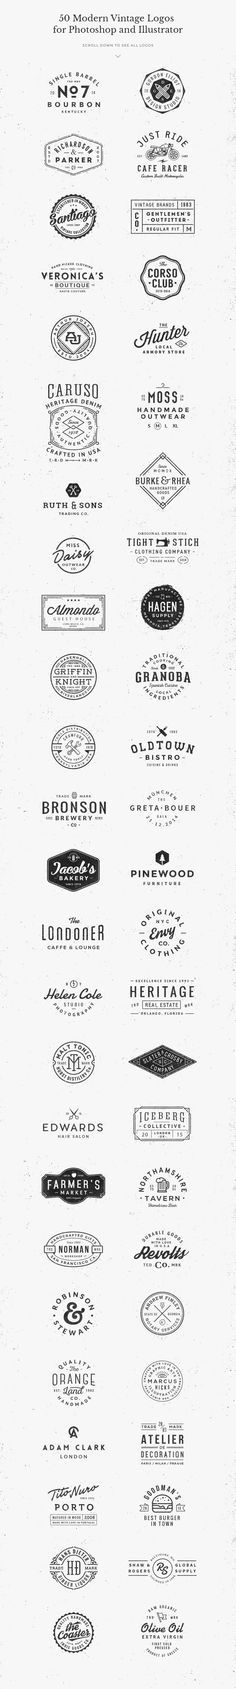 With this bundle you have a chance to get yourself all 5 logo templates packs and save over 50% off their regular price ($60). That's 50 vector logo templates that you can use for branding projects, labels, apparel design, typography pieces and more. They're all fully editable with only free fonts included!